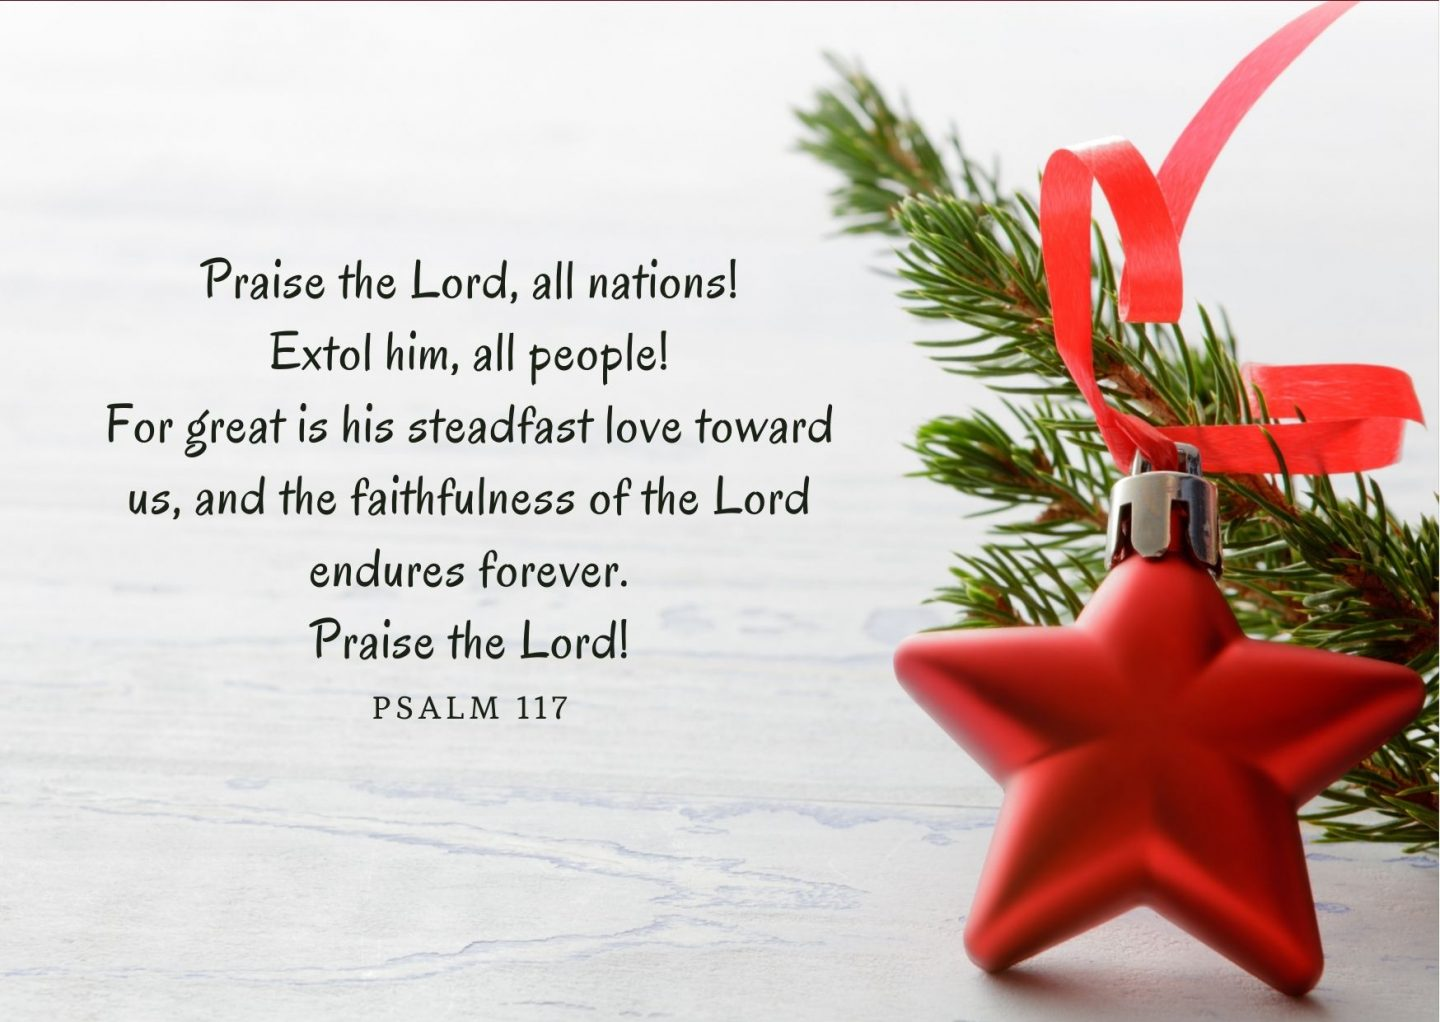 Praise the Lord, all nations! Extol him, all people! For great is his steadfast love toward us, and the faithfulness of the Lord endures forever. Praise the Lord! Psalm 117